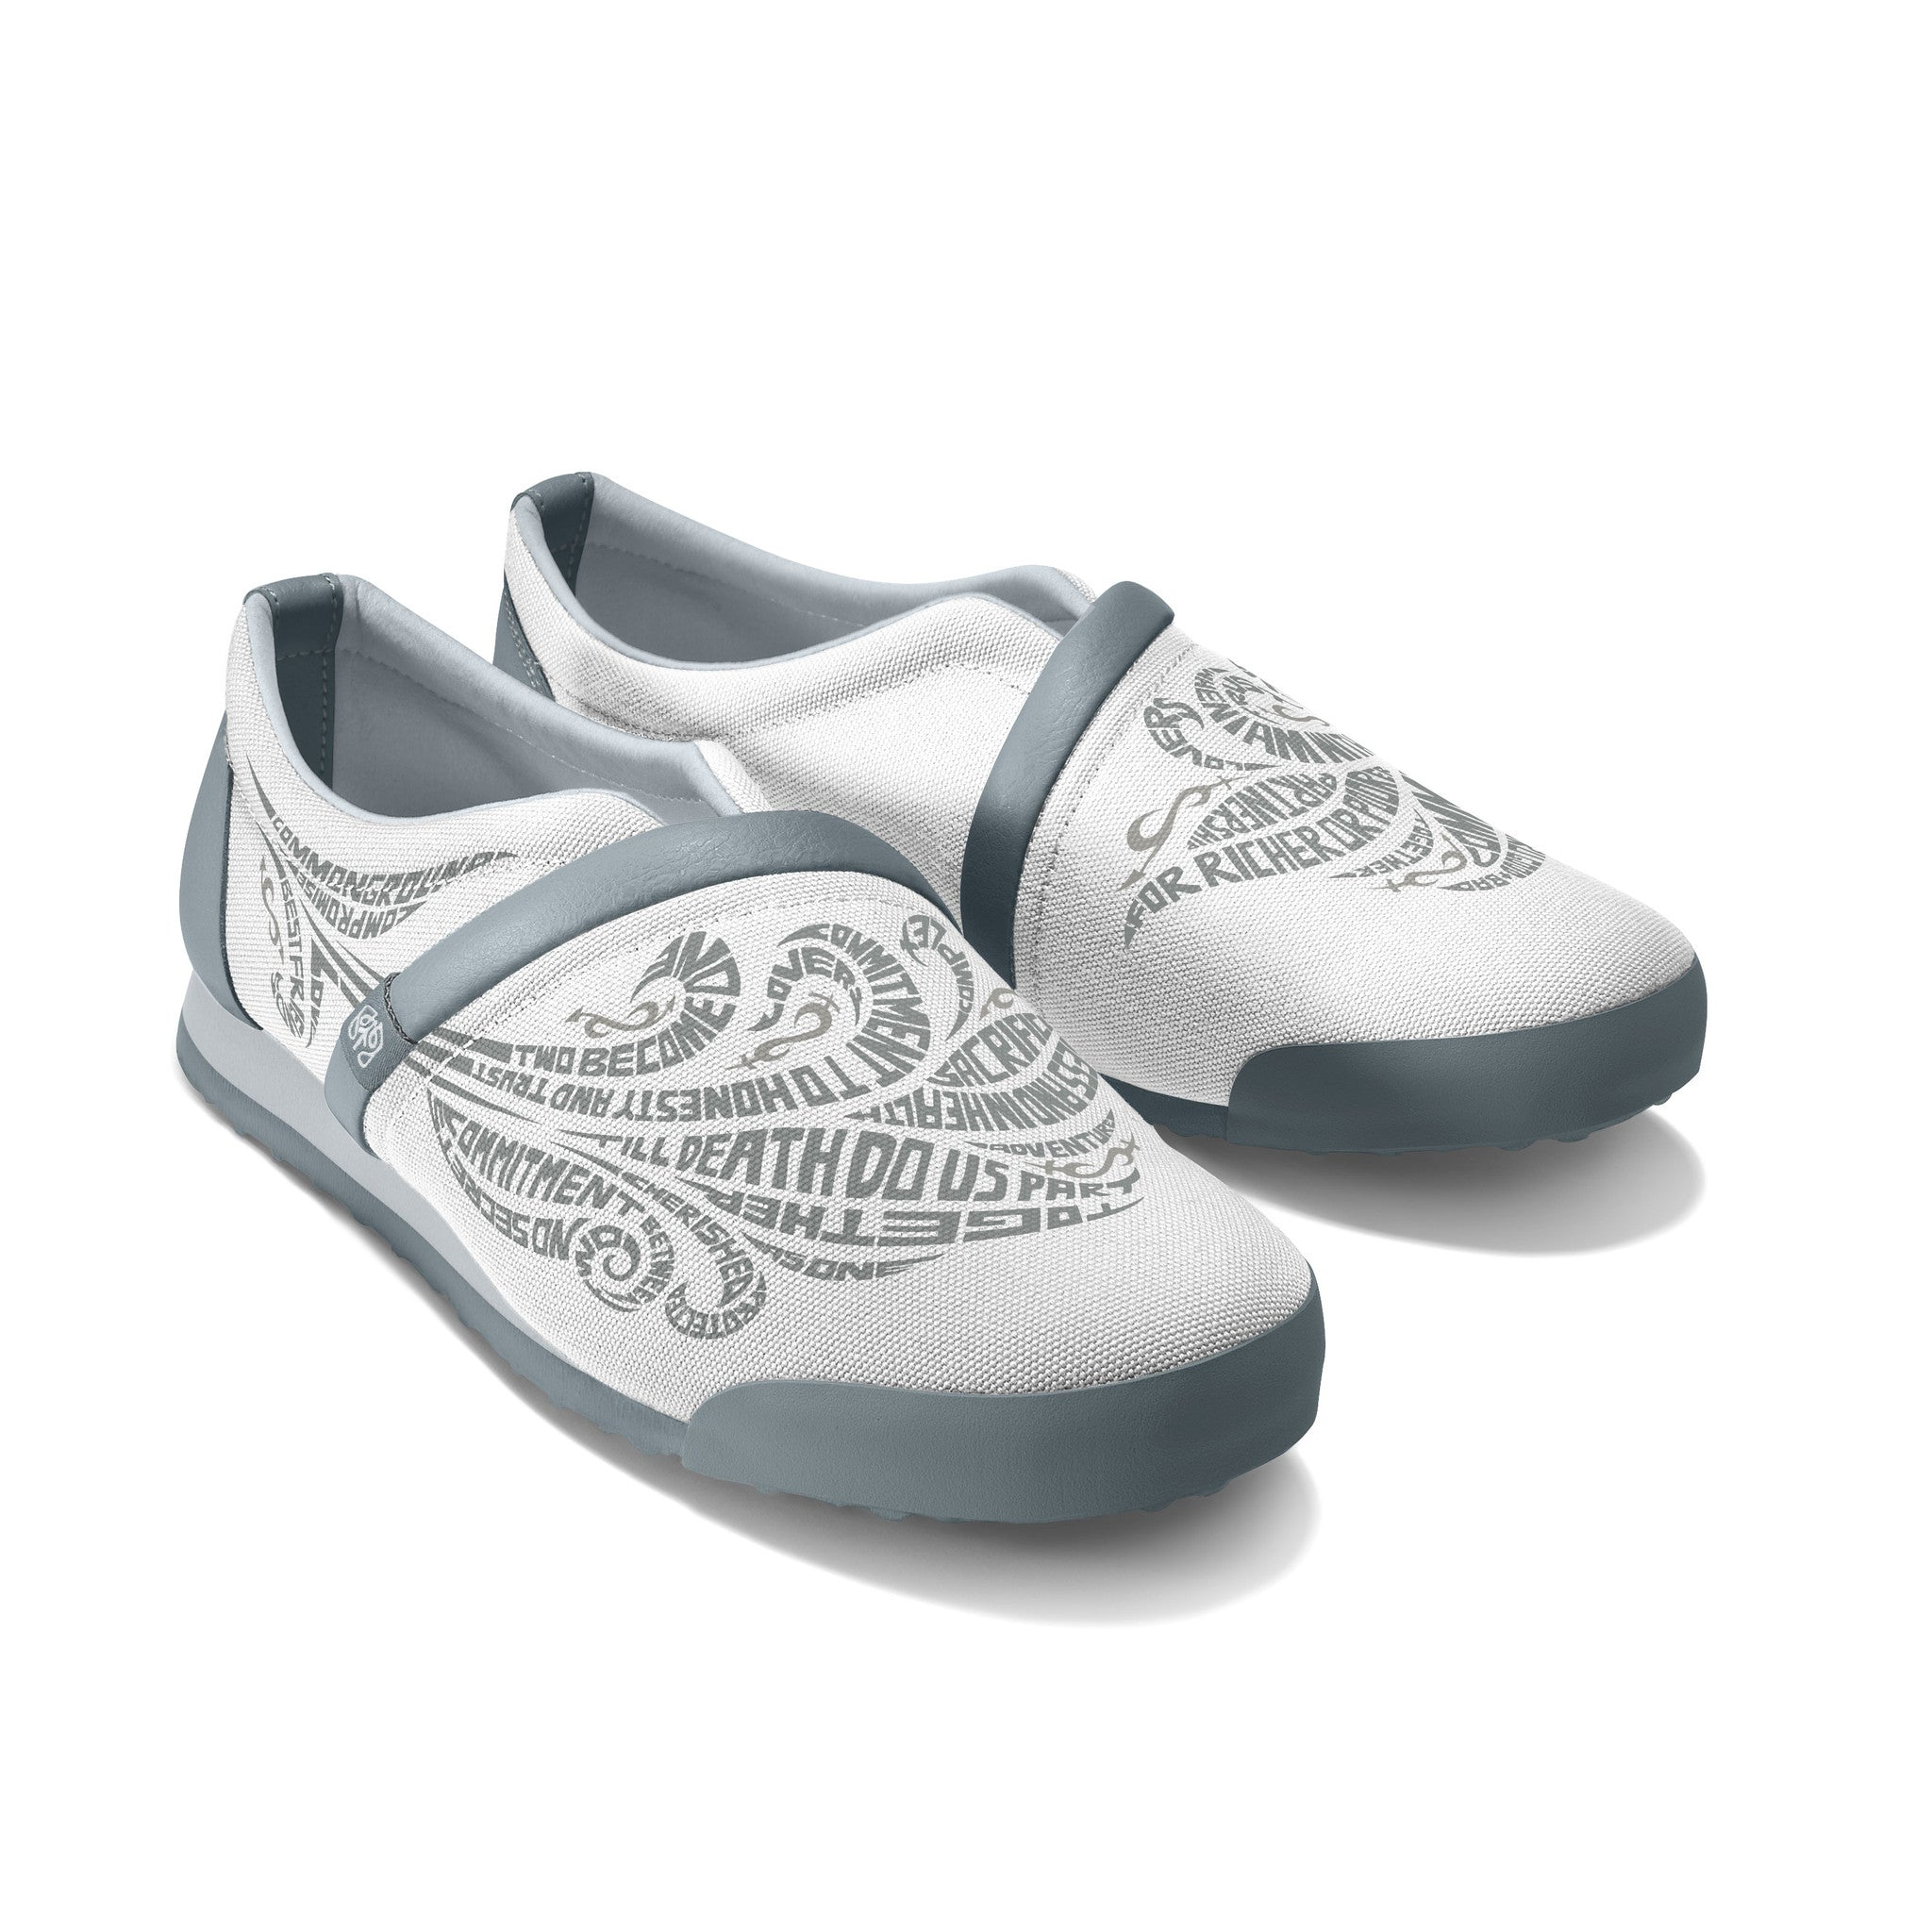 Bright_White - Common Ground Footwear Shoes Right Perspective View